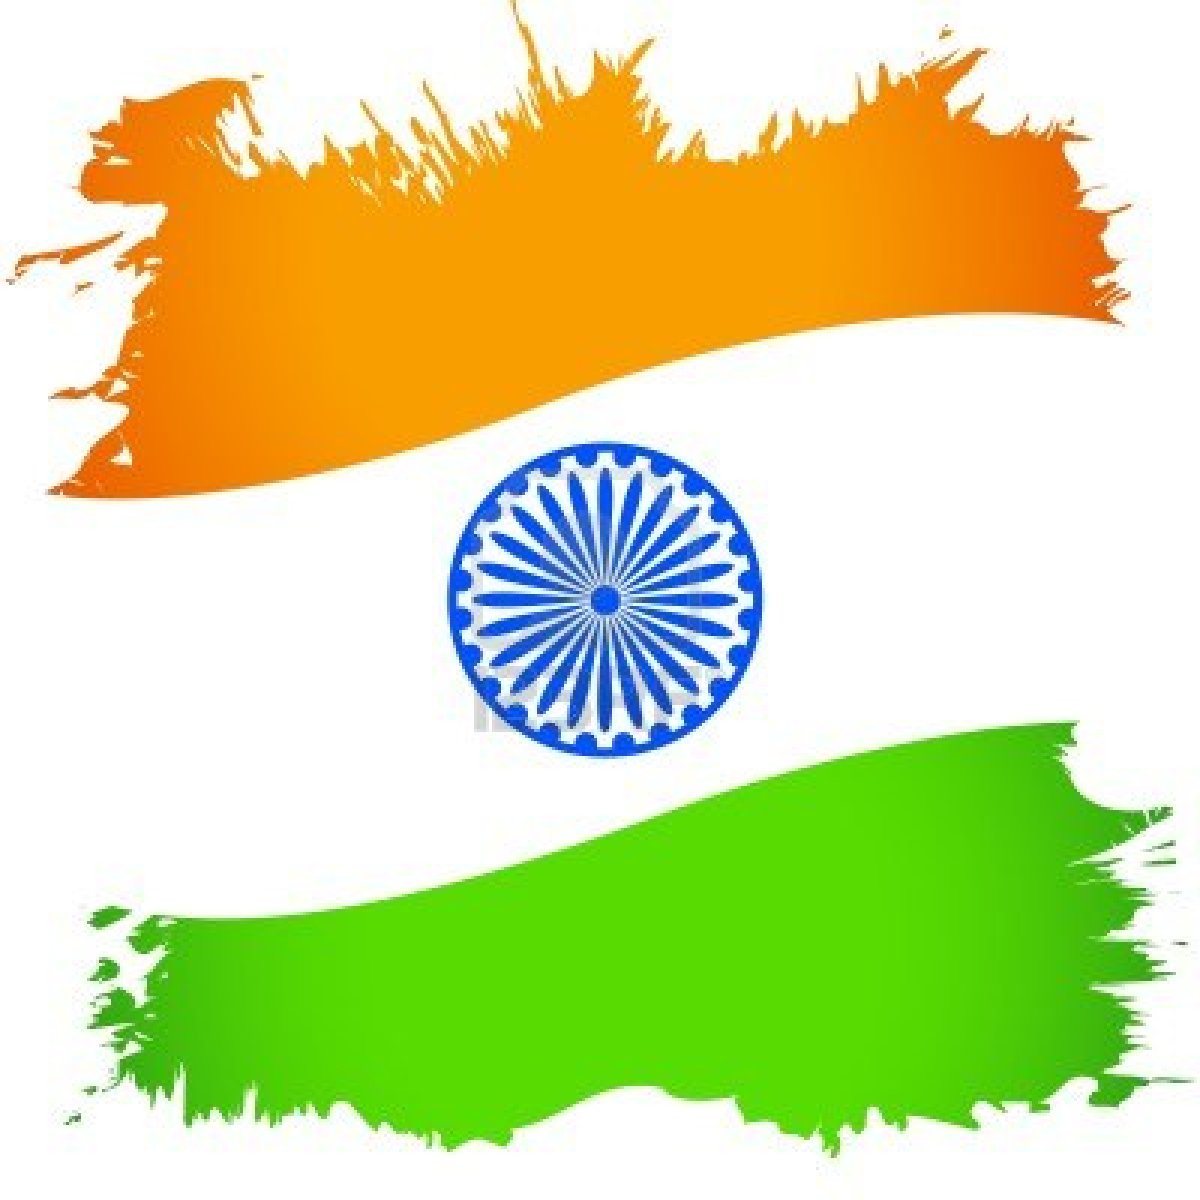 11779494-illustration-of-abstract-indian-flag-with-grunge